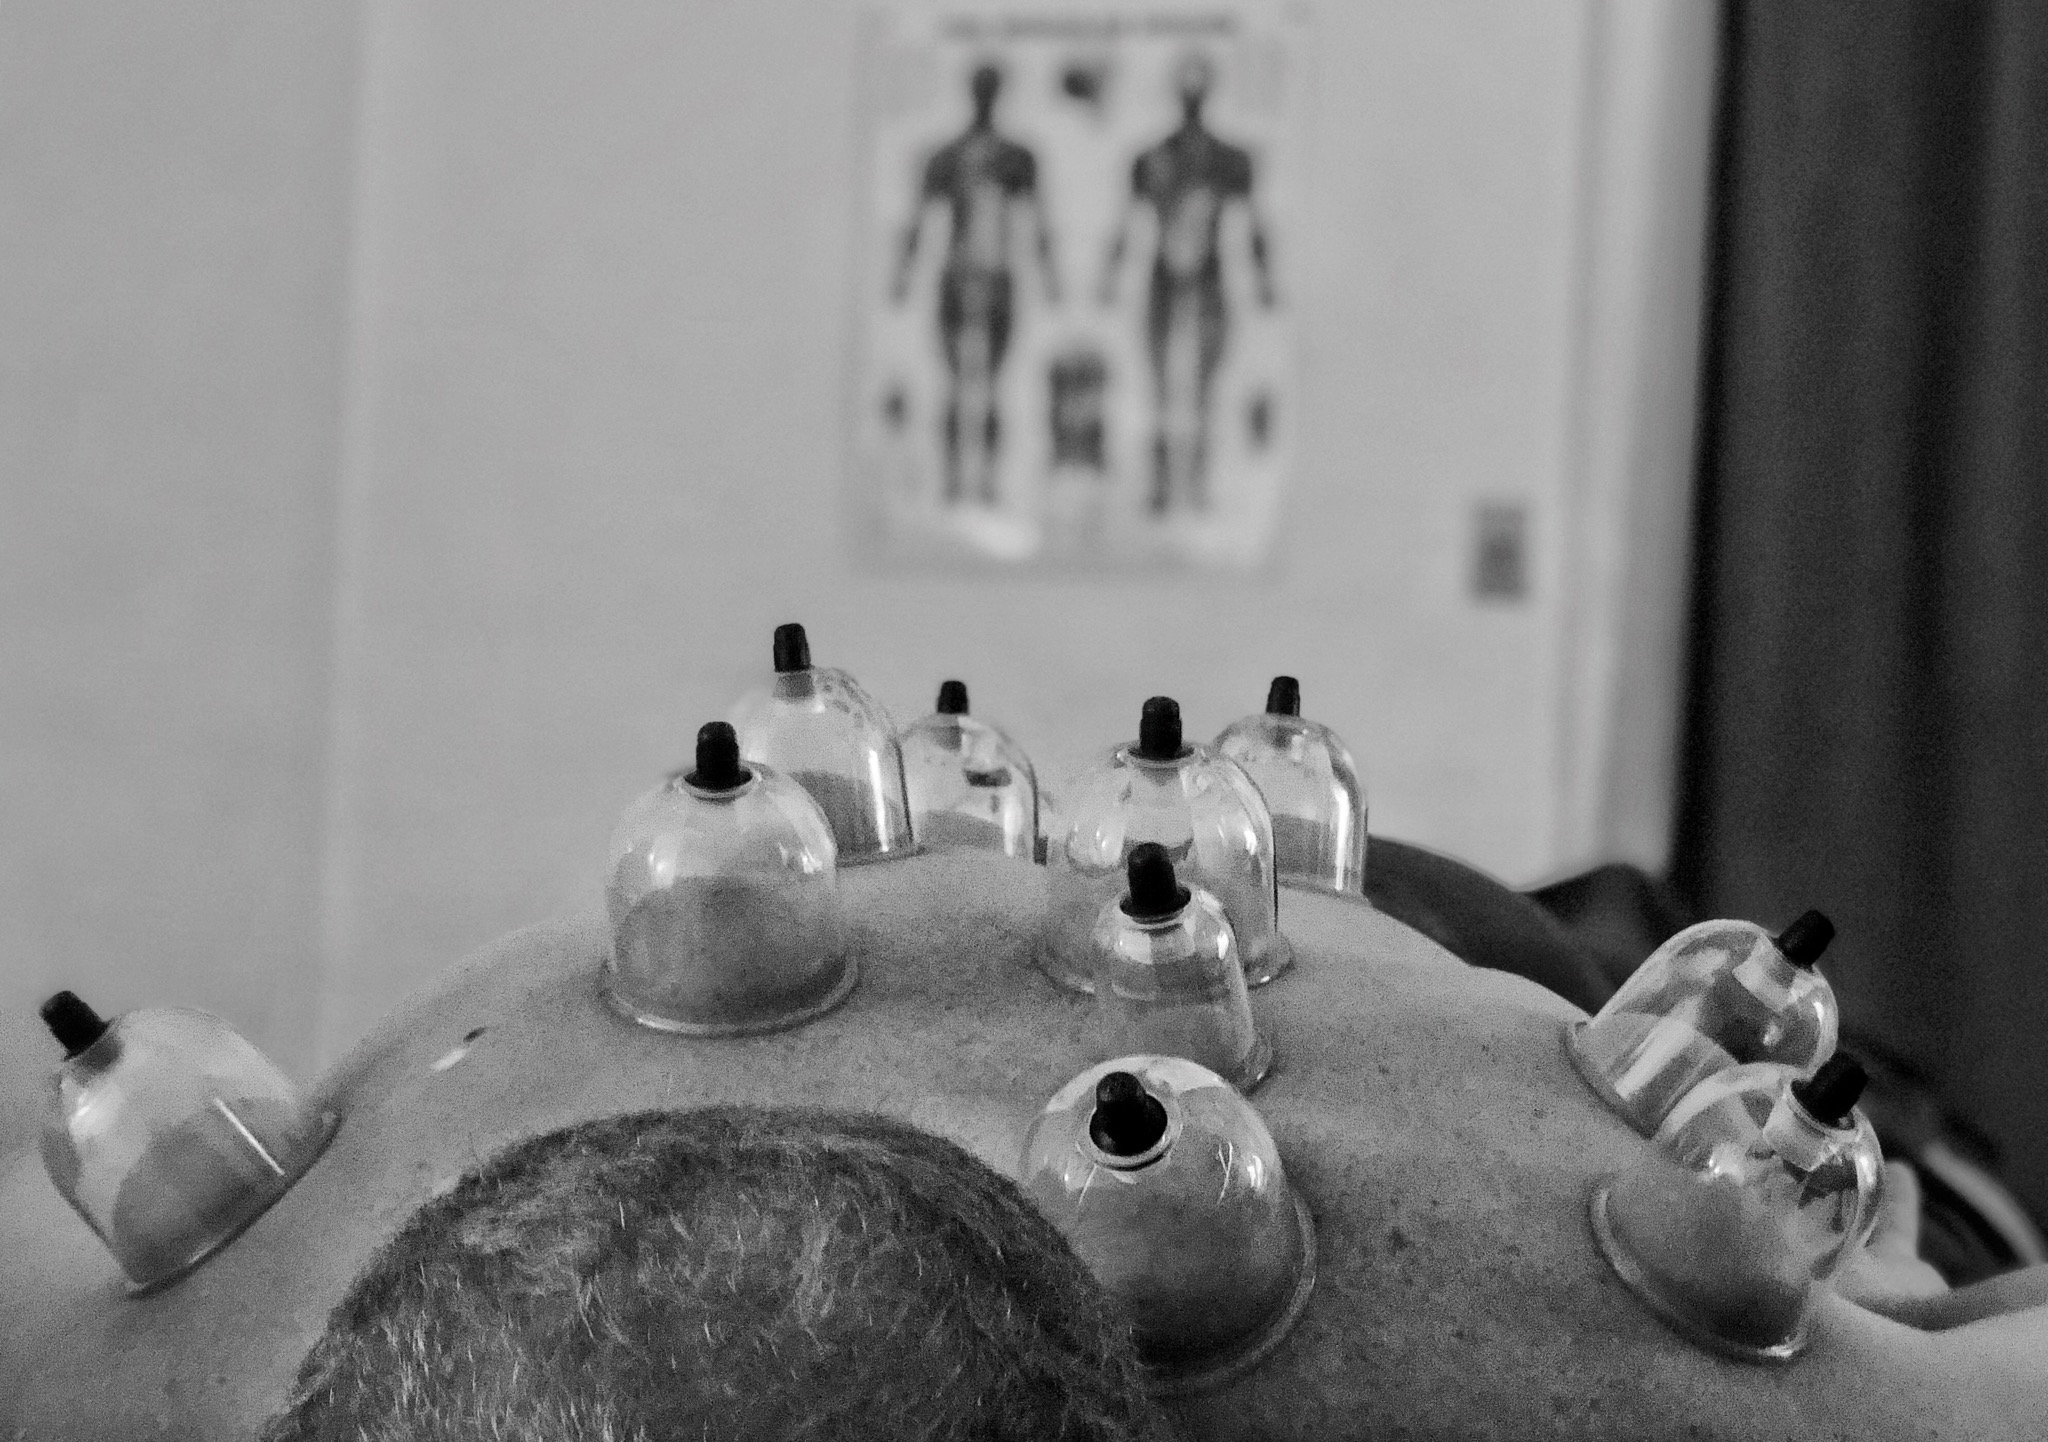 Cupping Treatment - 60 MINUTES $70•75 MINUTES $85Cupping Therapy provides concentrated blood flow to areas of tension to target chronic stagnation and increase healing. Cupping has several benefits including: respiratory health, digestive health, chronic tension, limited (ROM) range of motion, acute pain, and overall well being. If you're interested in this amazing modality, please ask if cupping is appropriate during your treatment.